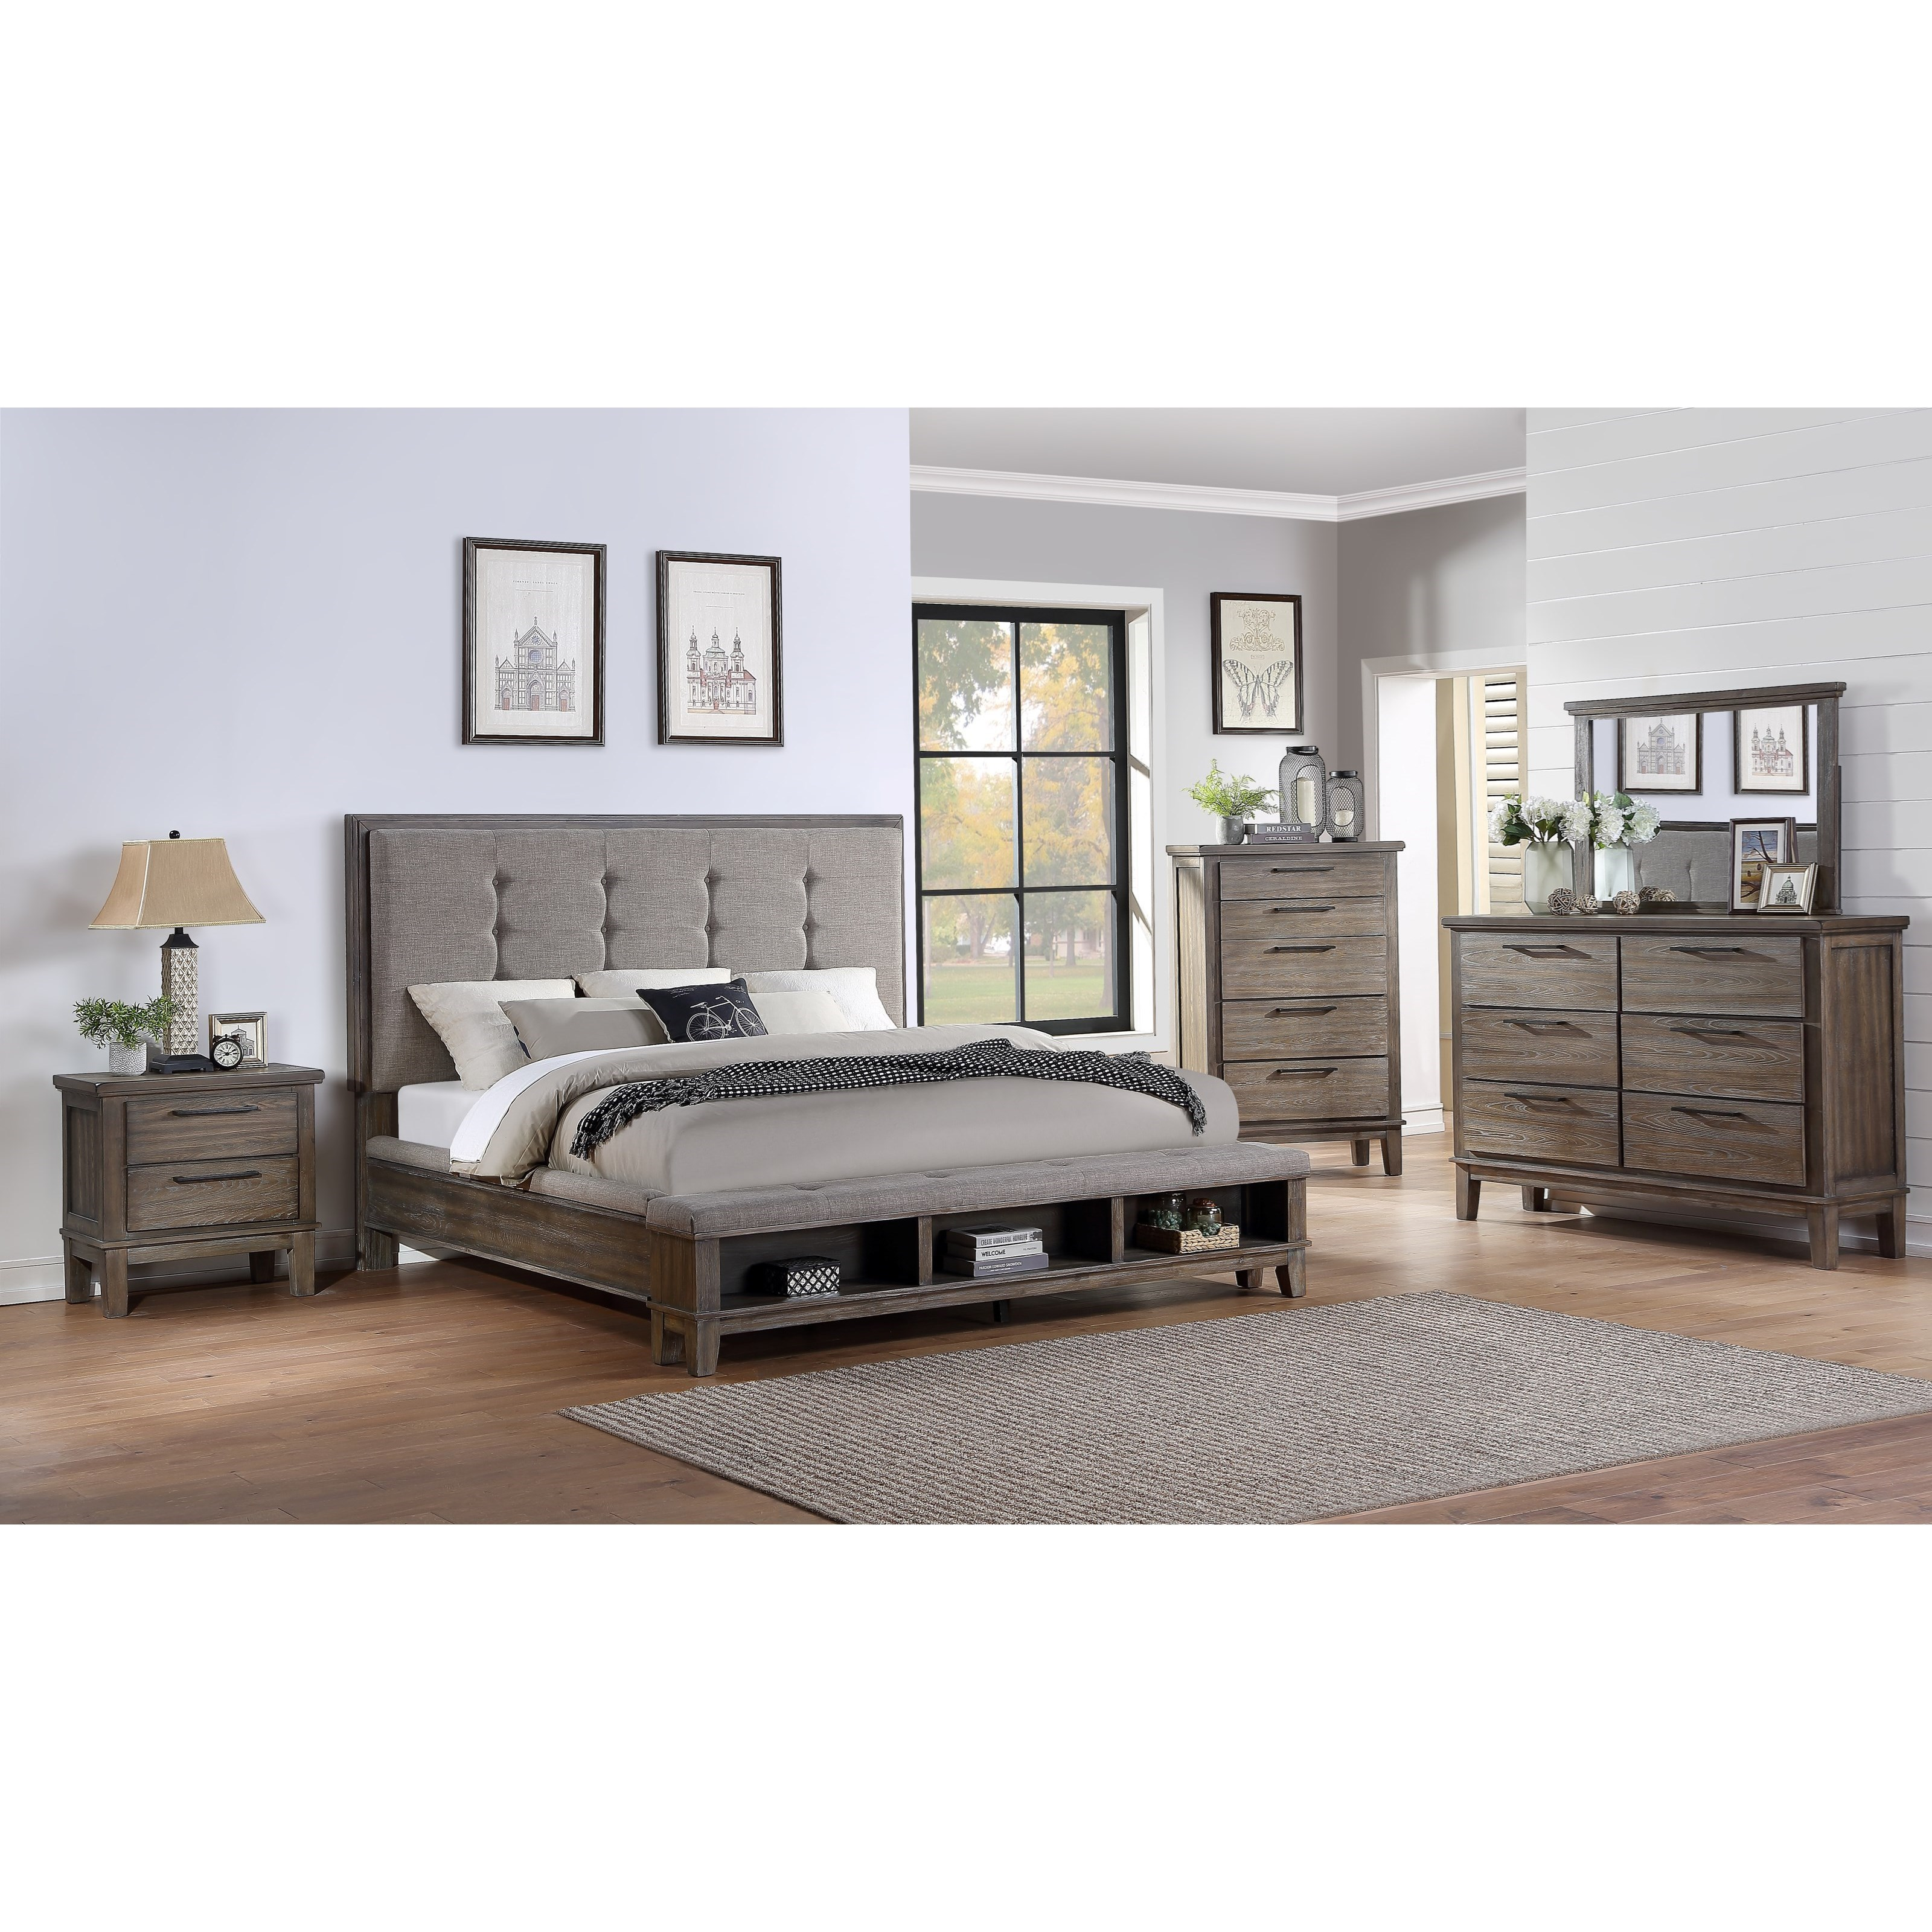 Cagney King Bedroom Group by New Classic at Sam Levitz Furniture